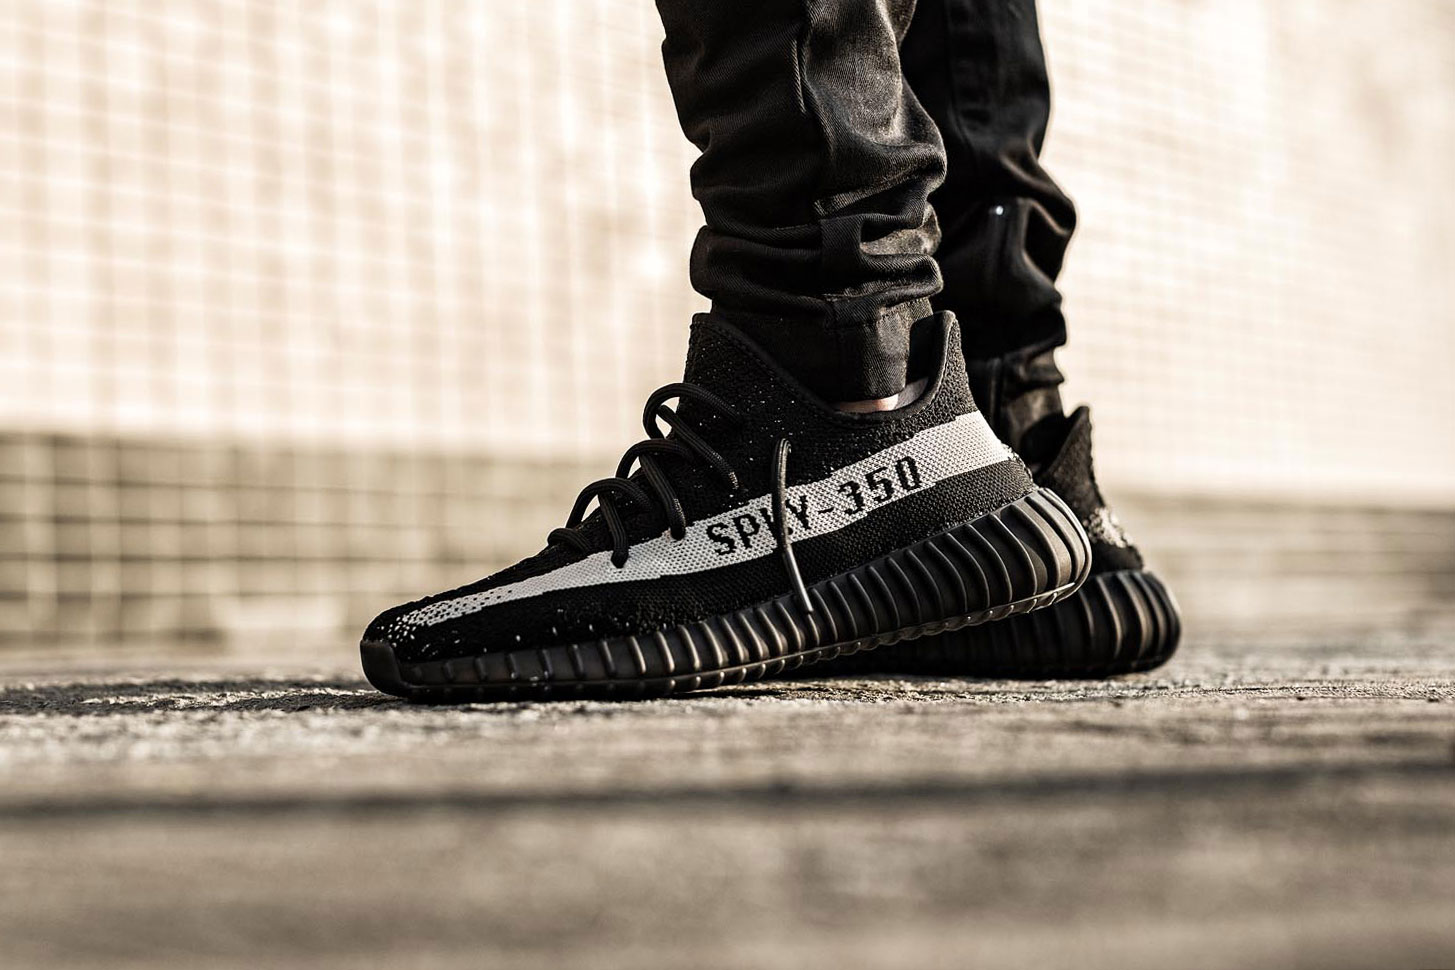 Men Yeezy boost 350 v2 'Zebra' raffle australia Launches